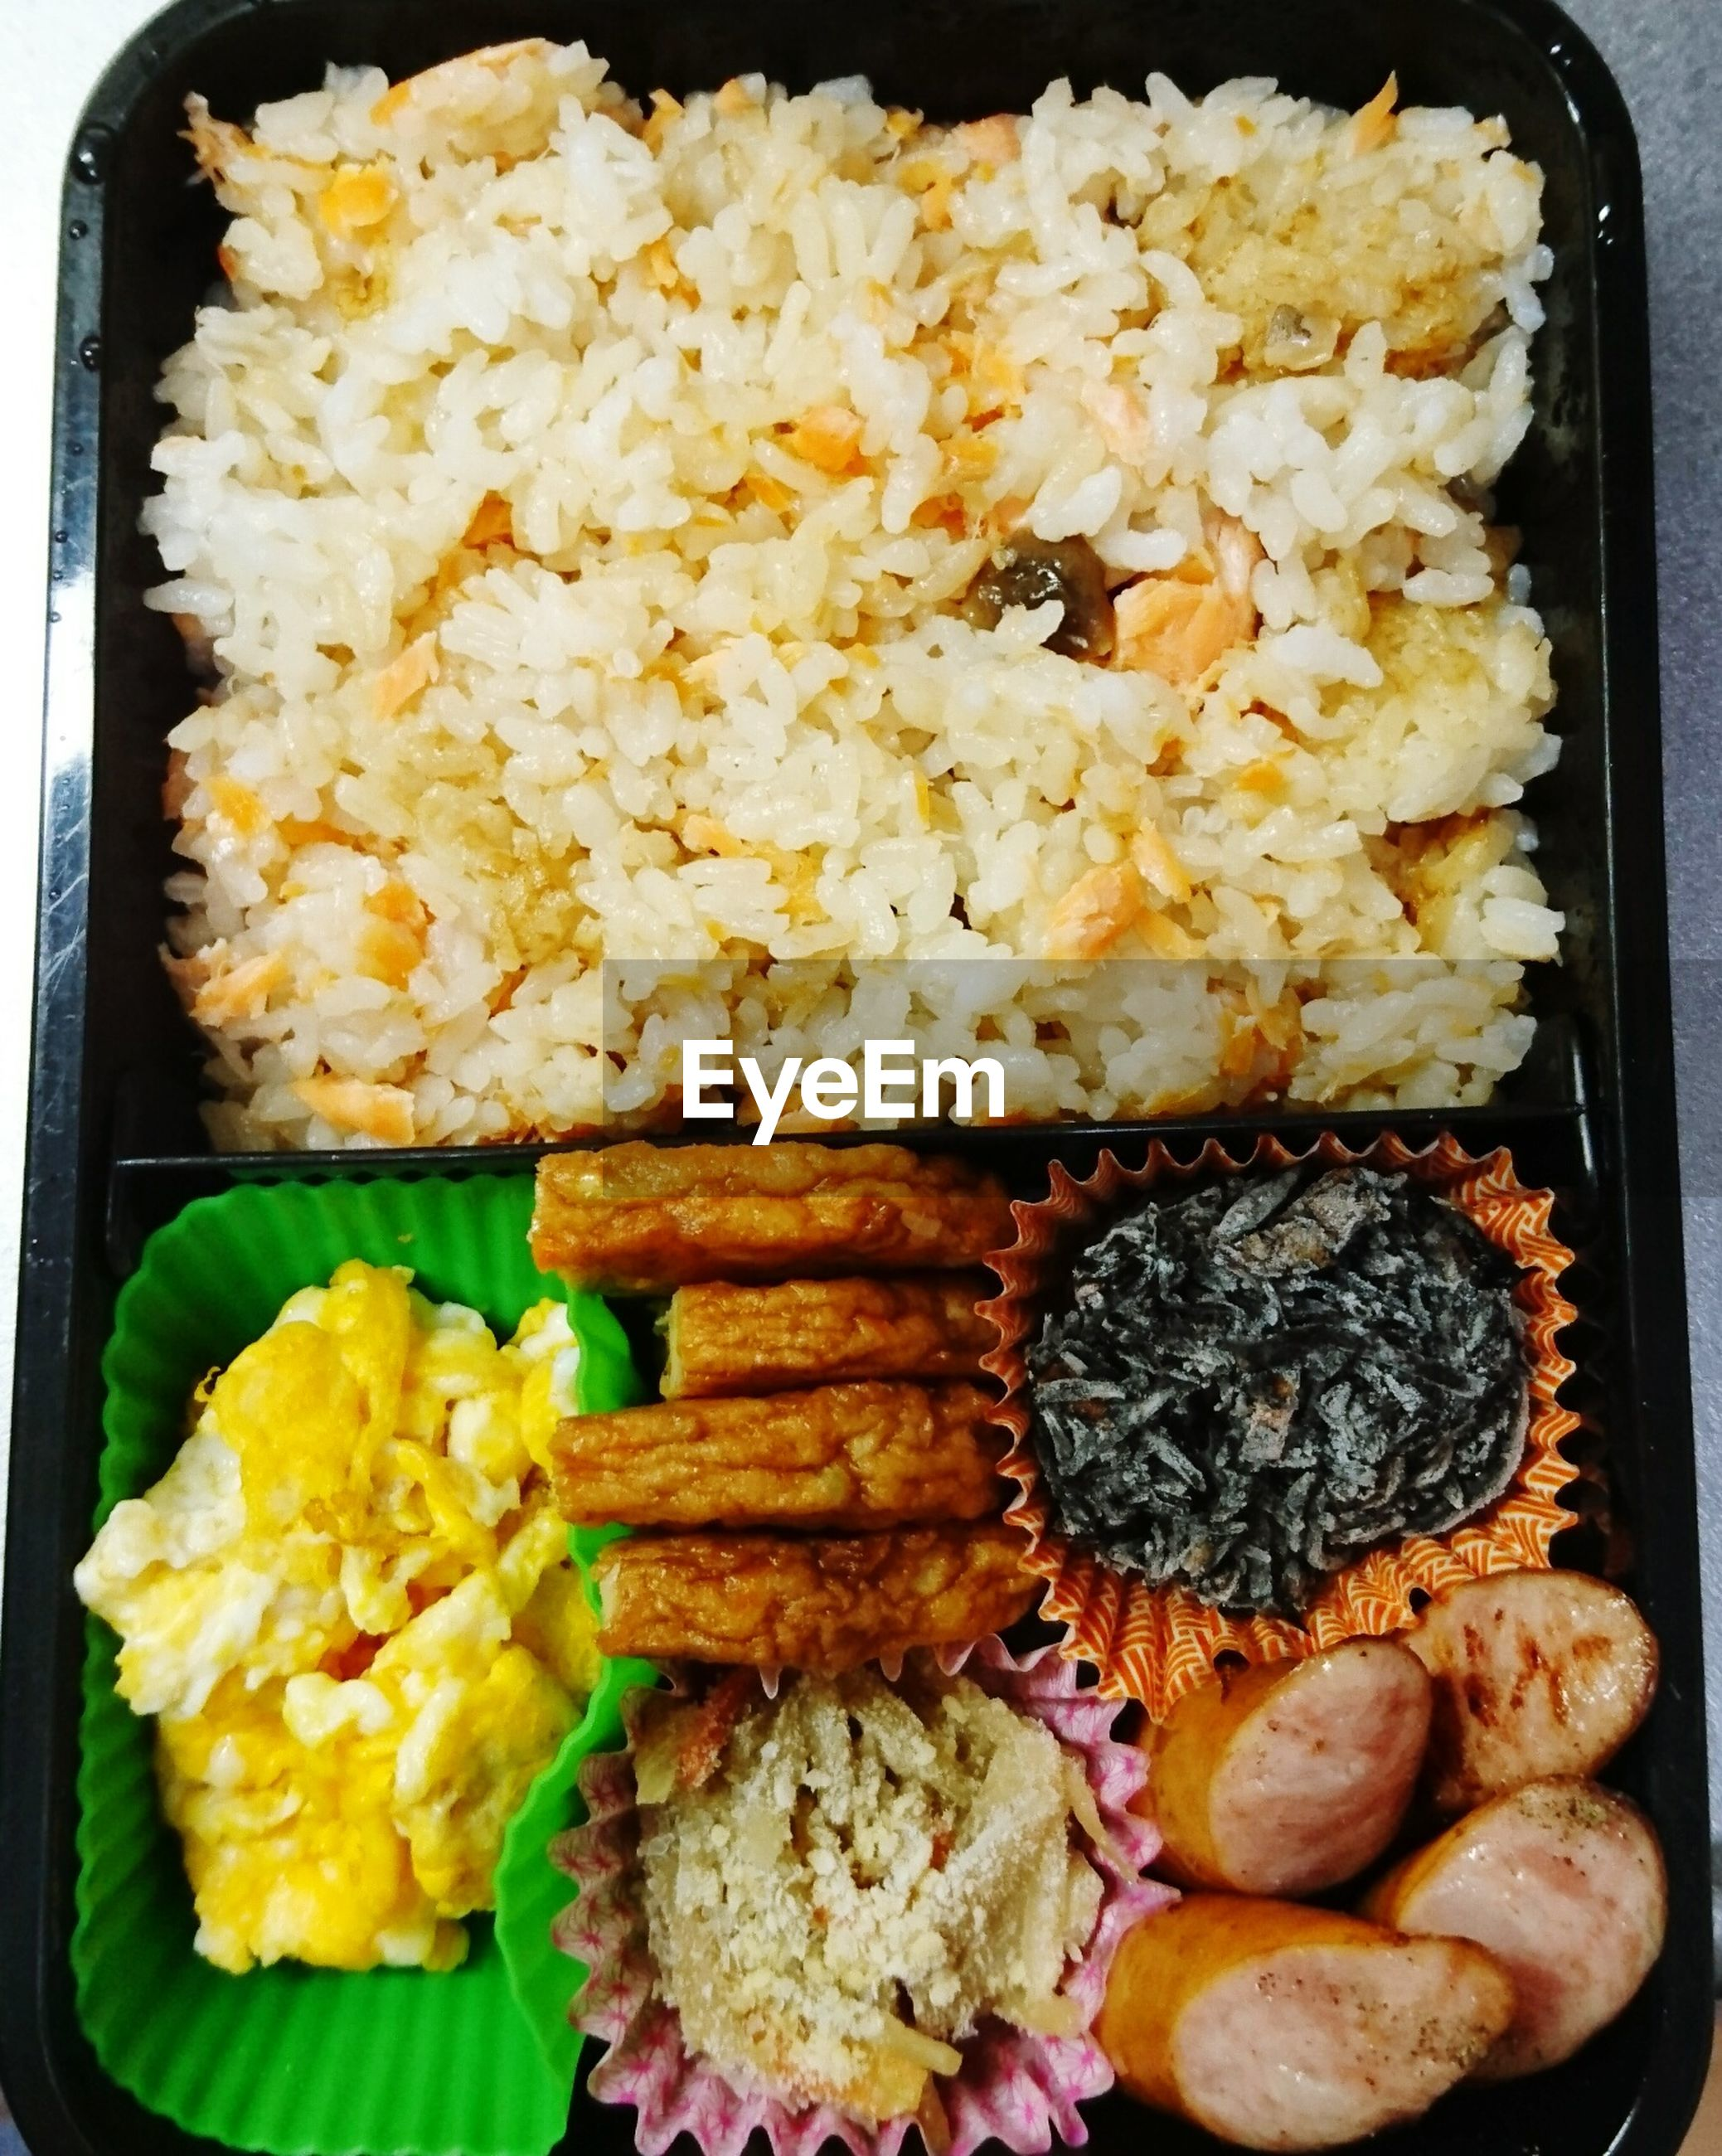 food, food and drink, rice - food staple, ready-to-eat, serving size, freshness, no people, rice, directly above, healthy eating, plate, indoors, close-up, fried rice, day